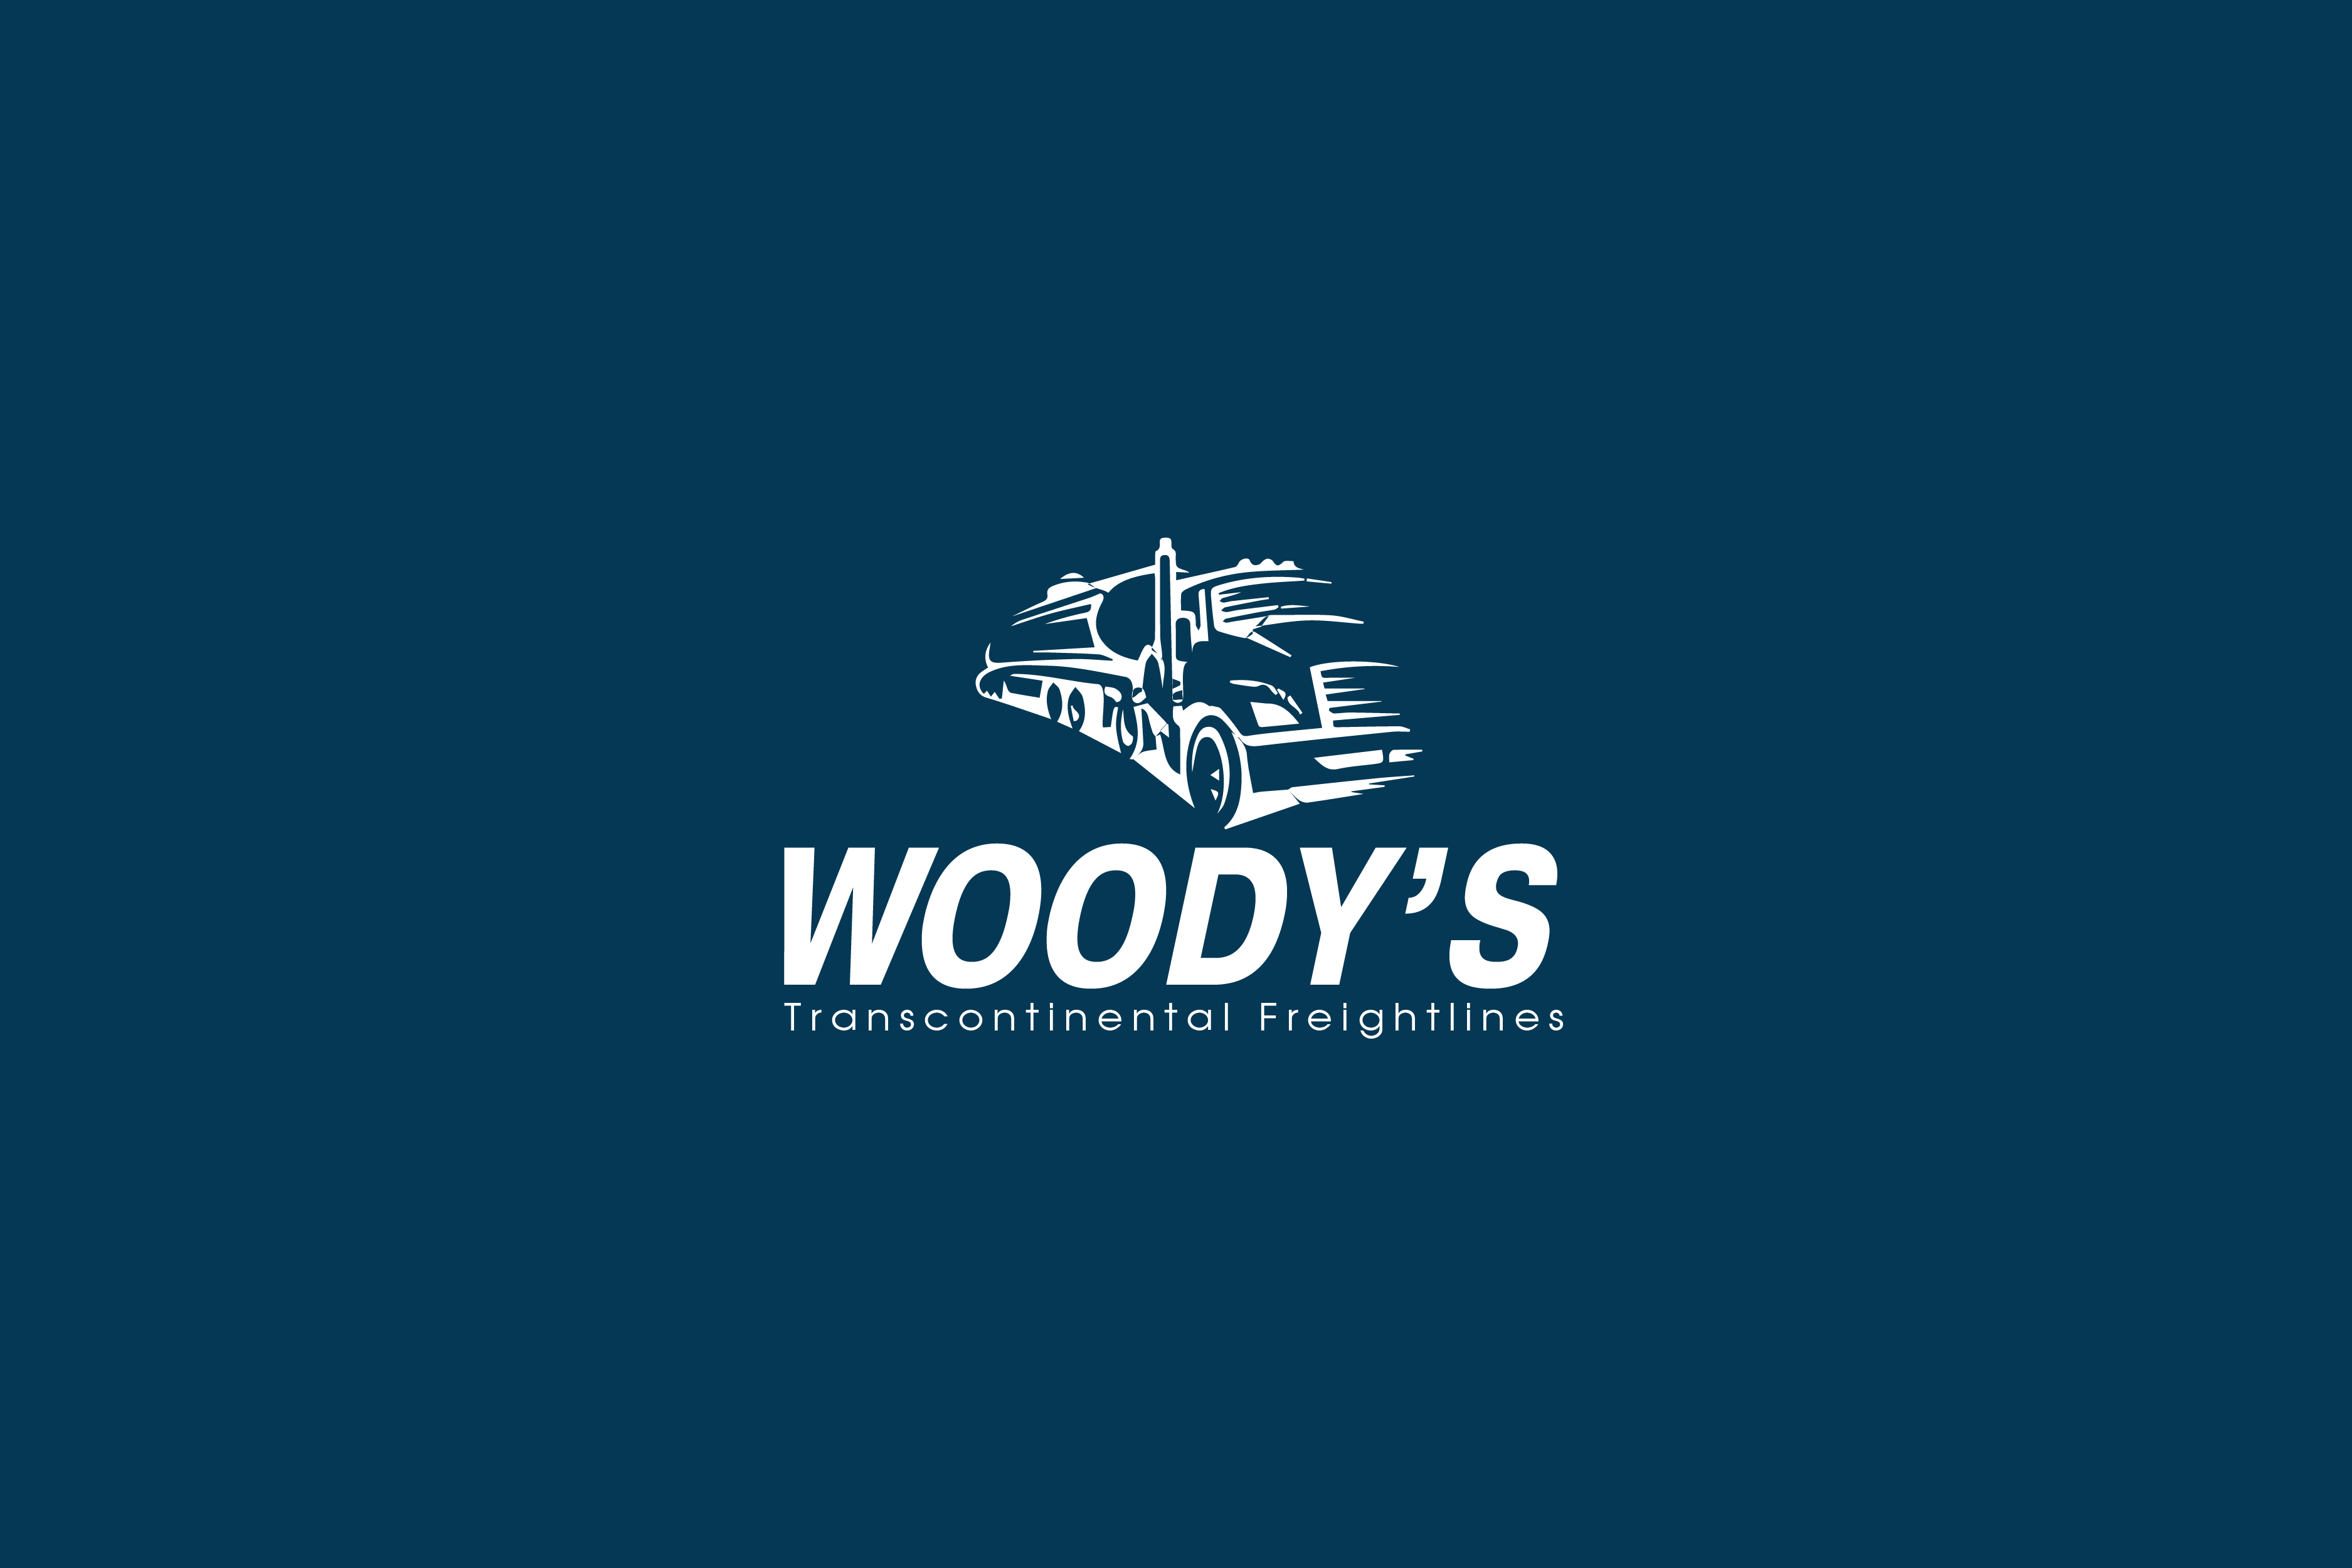 Logo Design by brands_in - Entry No. 61 in the Logo Design Contest Creative Logo Design for Woody's Transcontinental Freightlines.